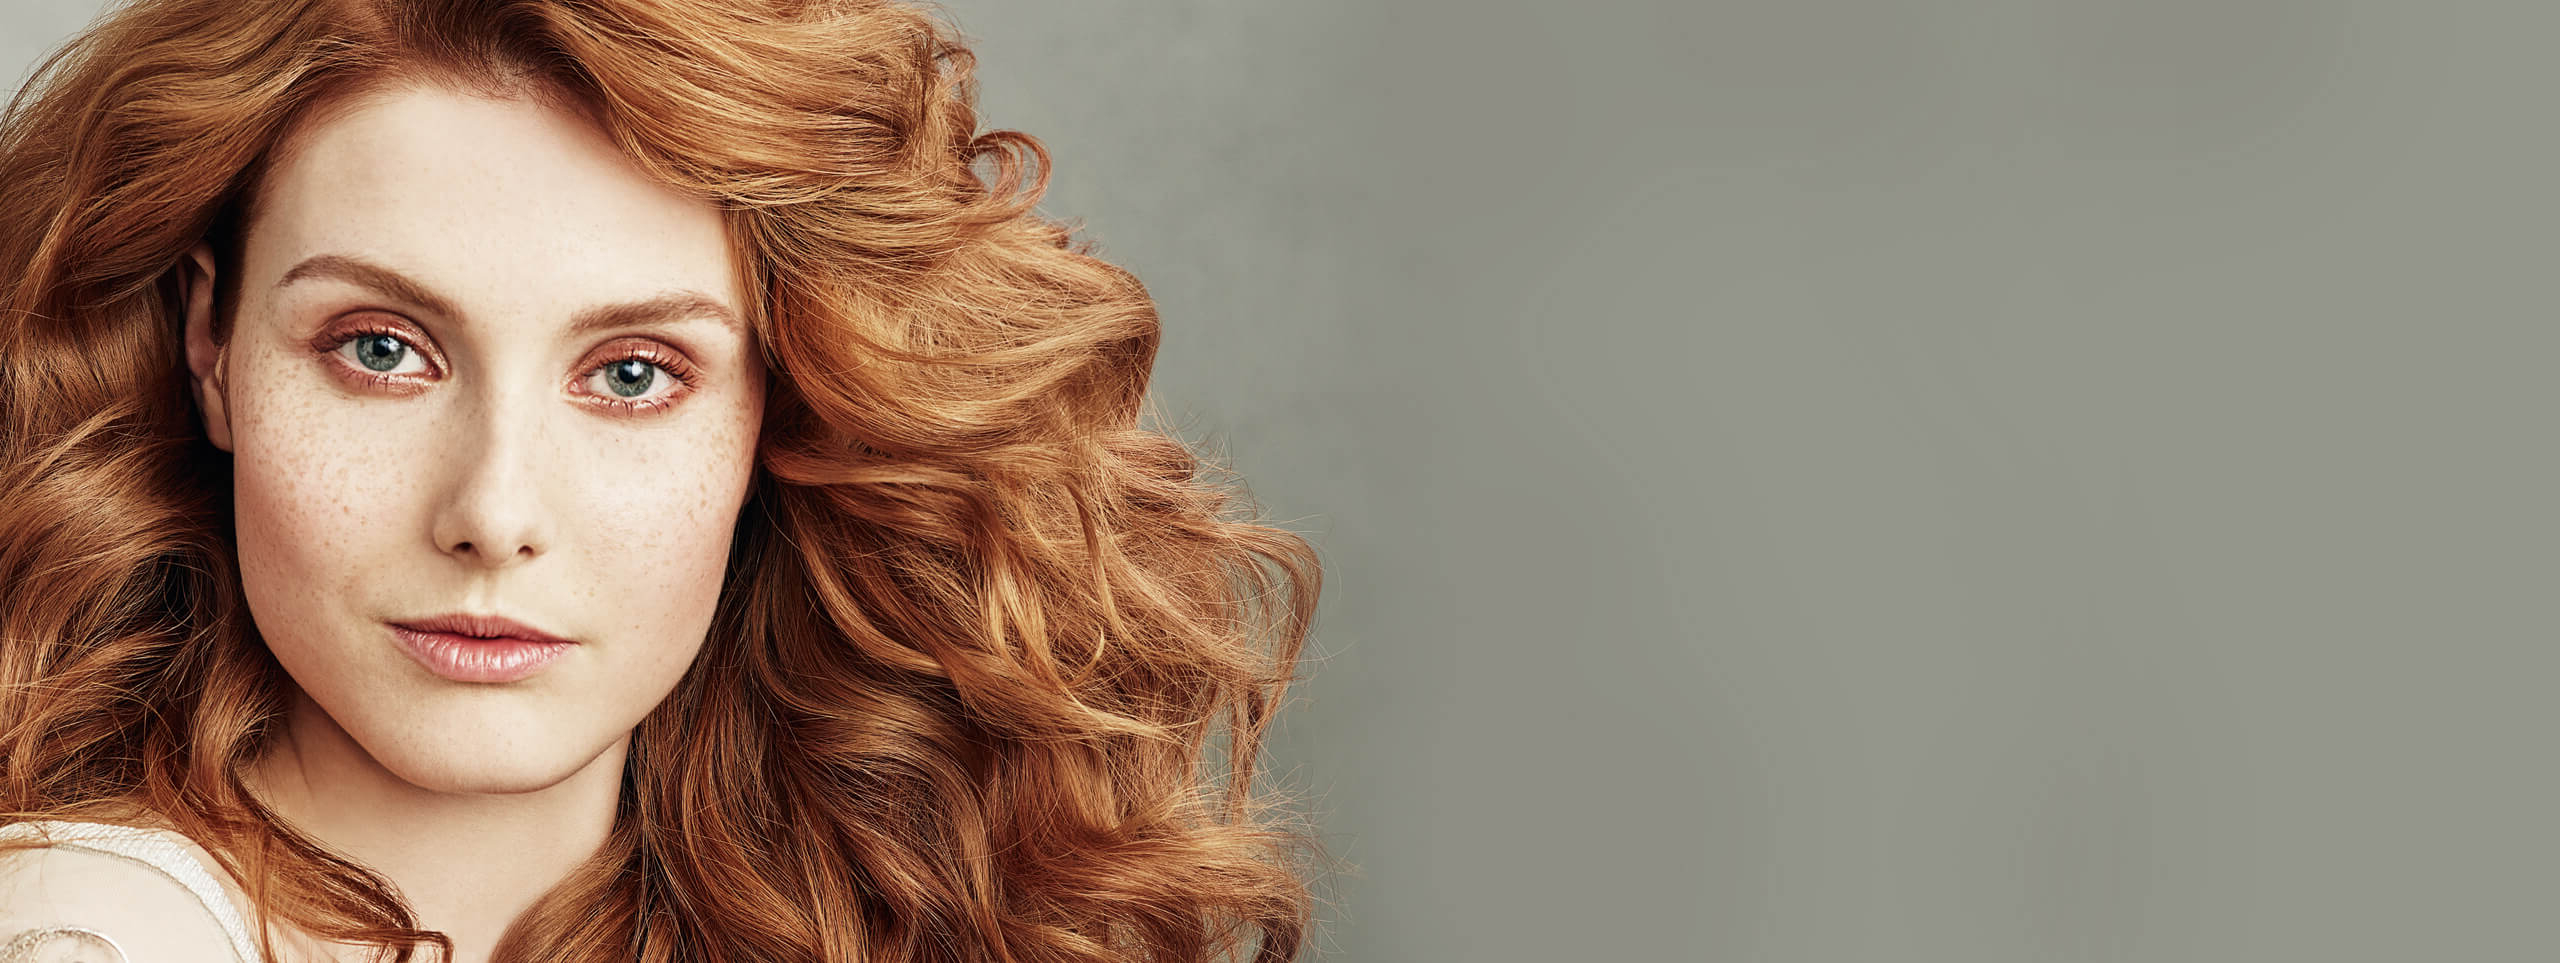 Most Recent Shiny Tousled Curls Hairstyles With Curly Hair Products For Beautiful Curls (View 9 of 20)